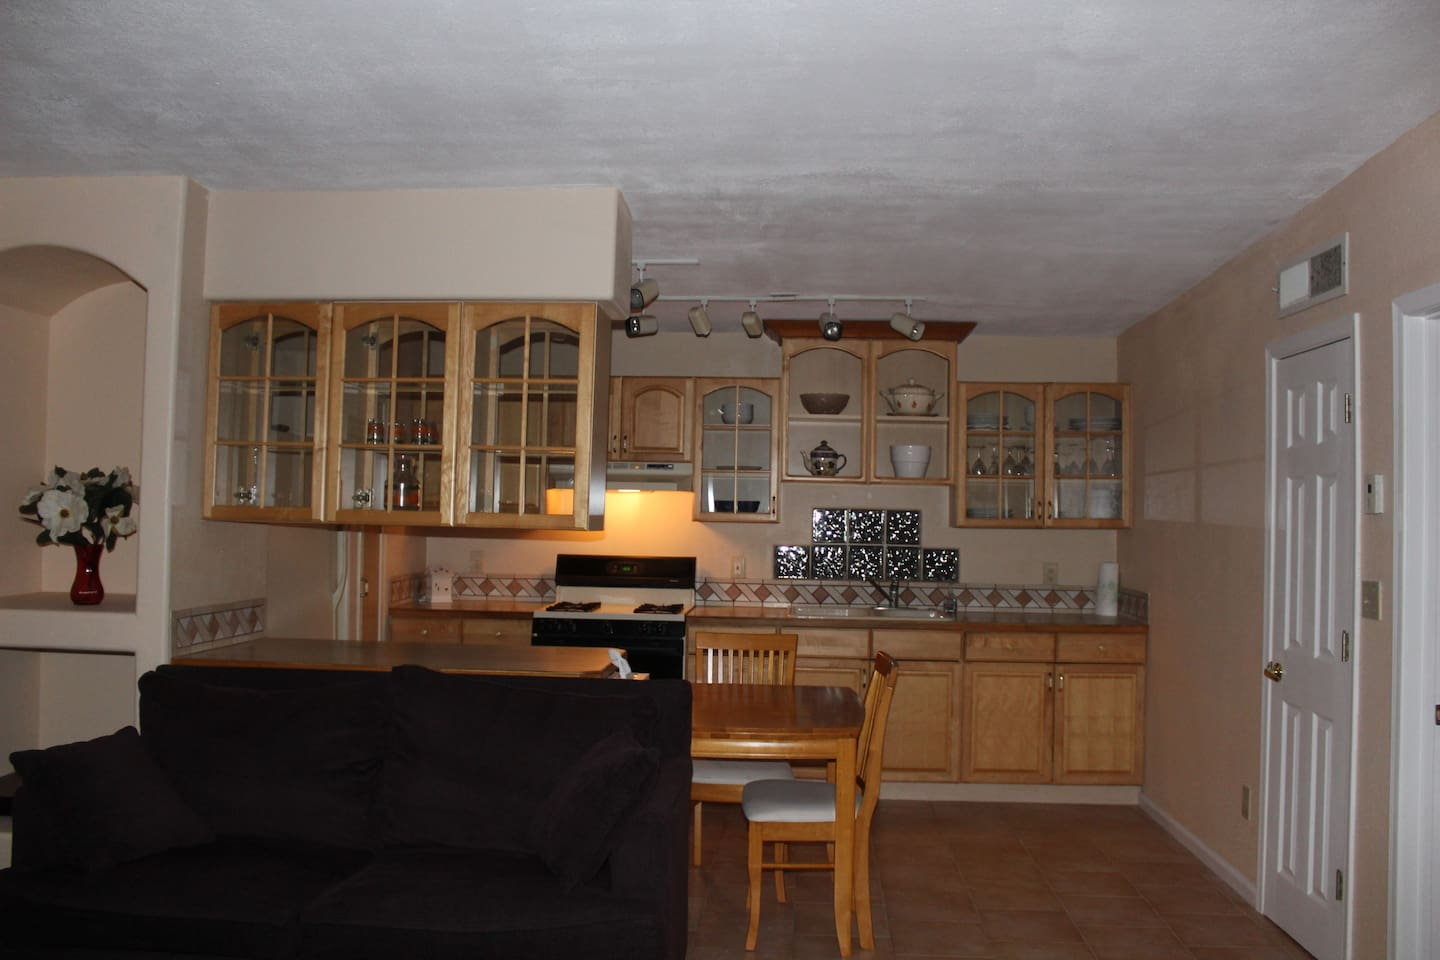 Casita kitchen and living room